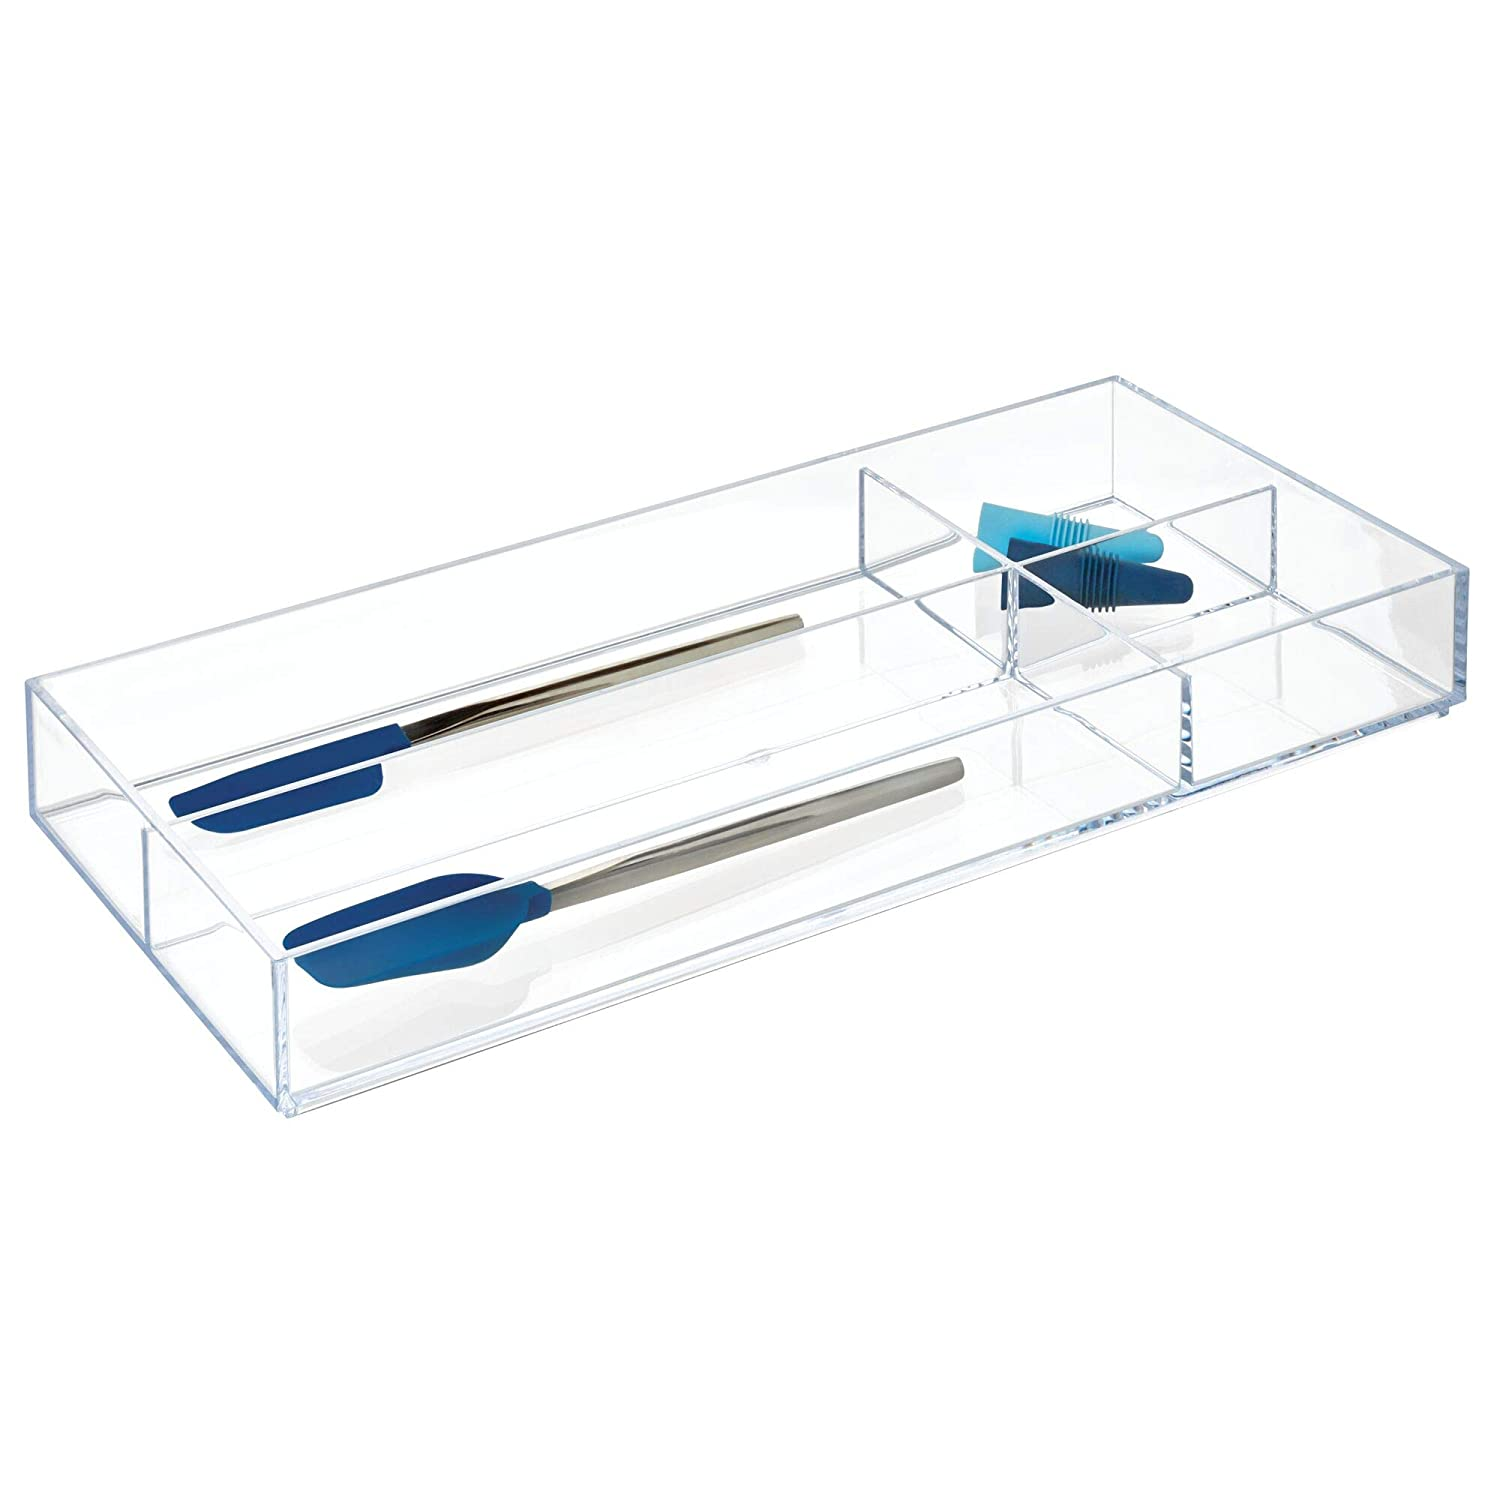 iDesign Clarity Organiser Tray Works Well as Accessories Organiser Extra Large Plastic Drawer Insert Clear